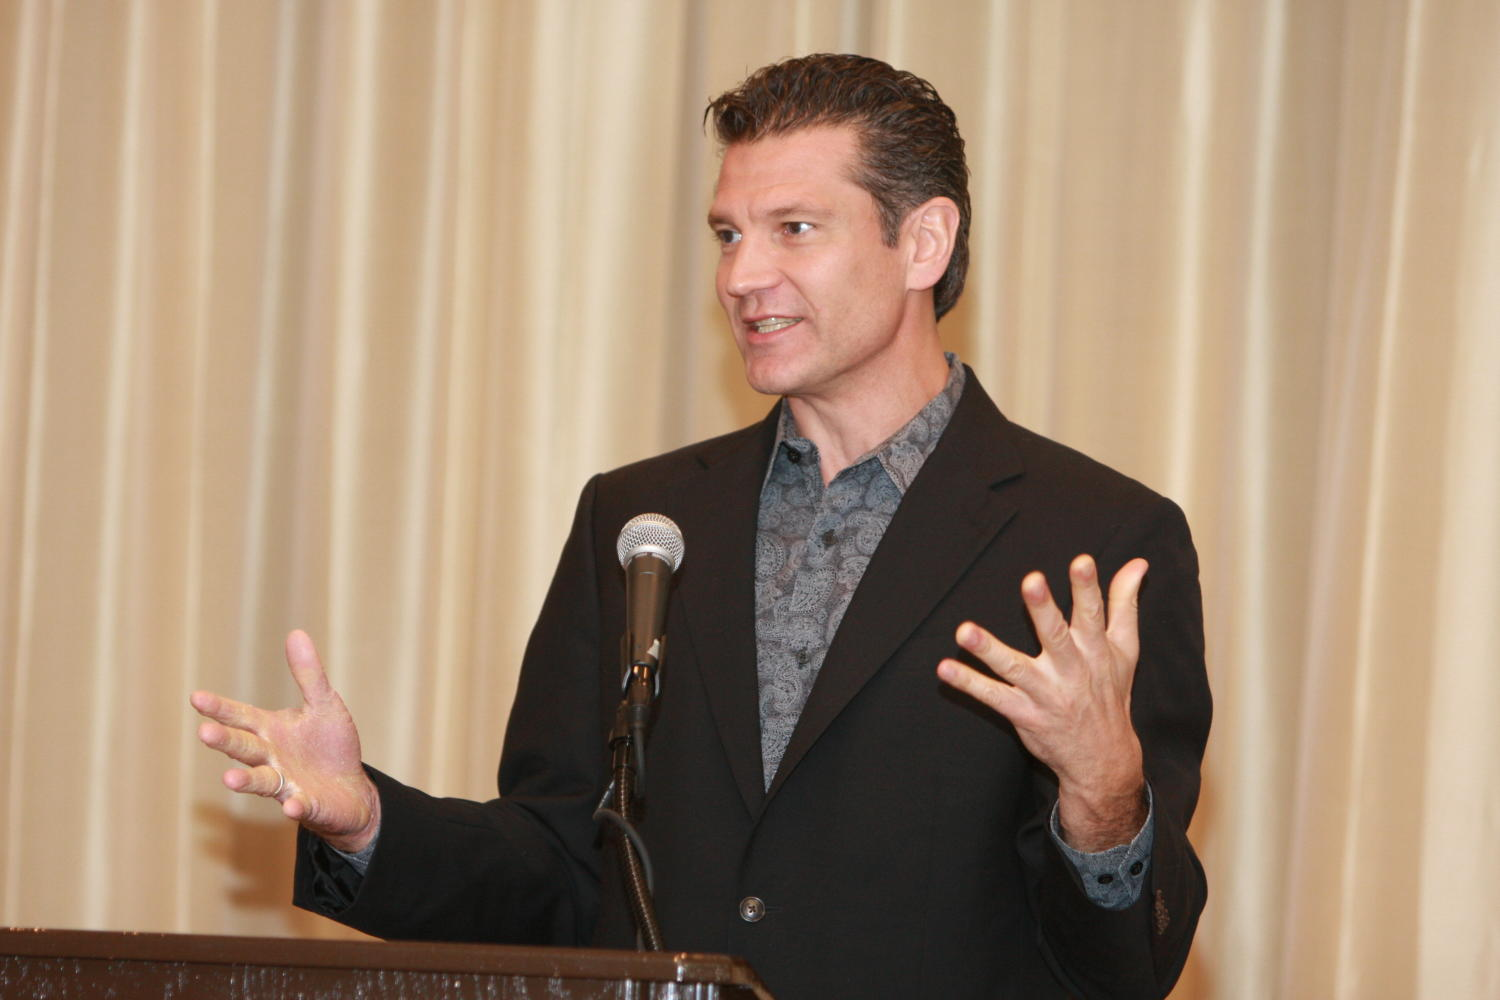 [Unidentified man giving a speech at the TDNA conference], Photograph of an unidentified man standing at a podium and speaking into a microphone as he gives a speech during the 2010 Texas Daily Newspaper Association annual meeting held in Houston, Texas.,